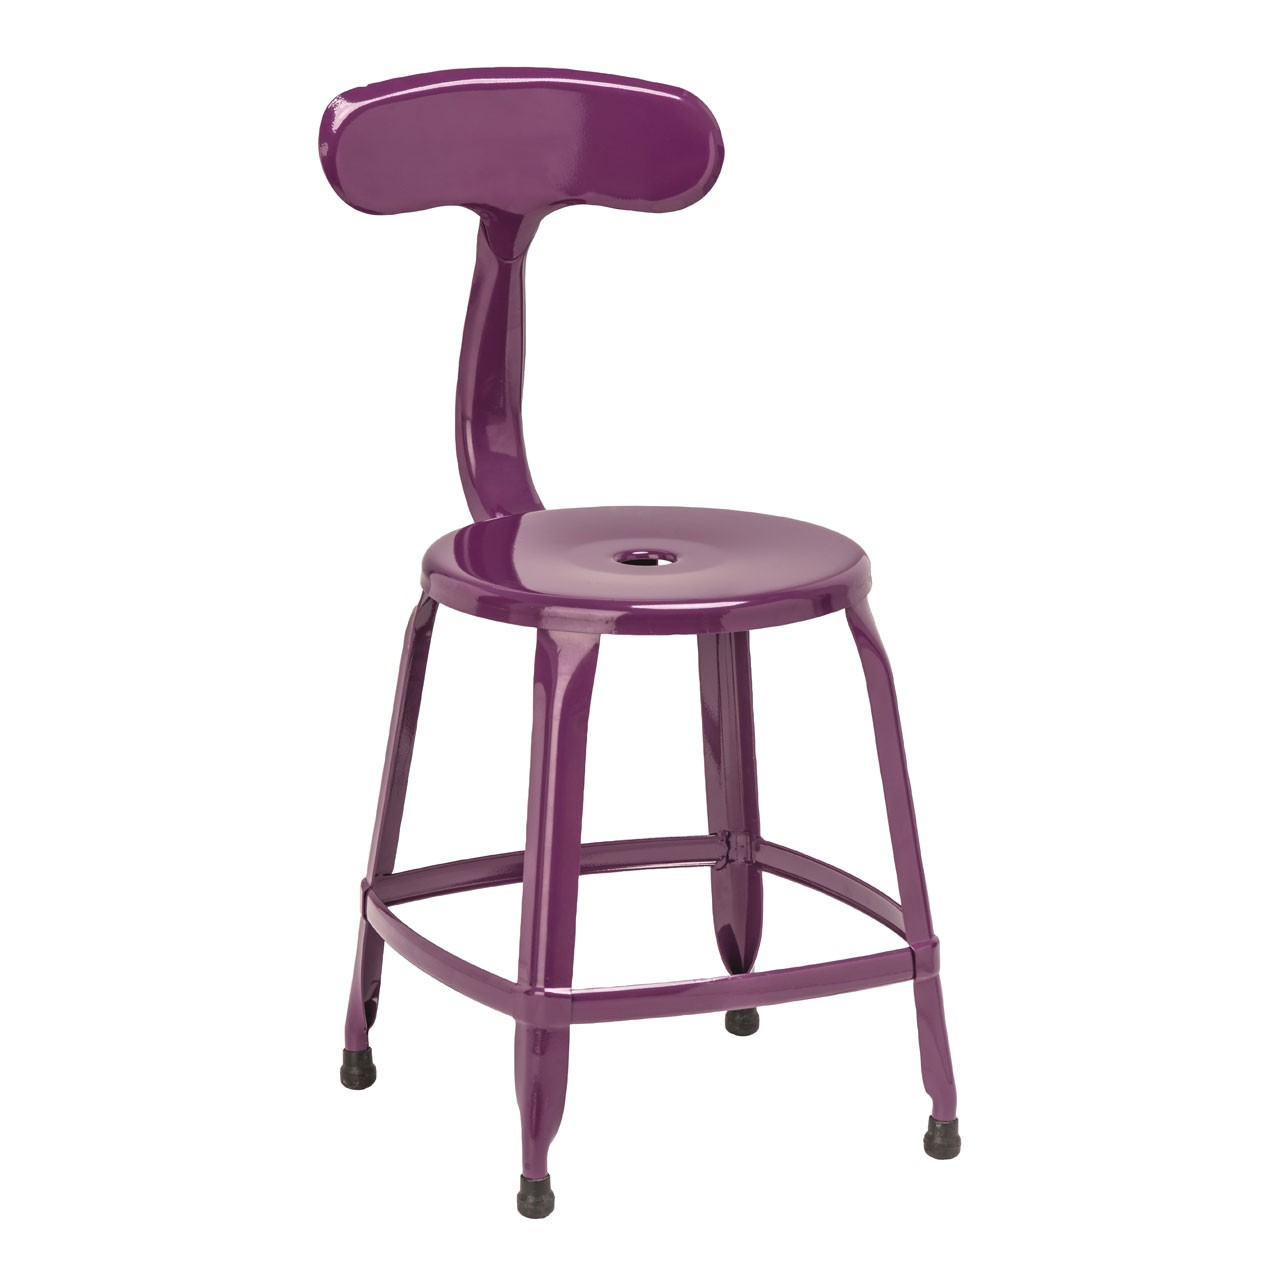 4 x Disc Chair Purple Powder Coated Metal